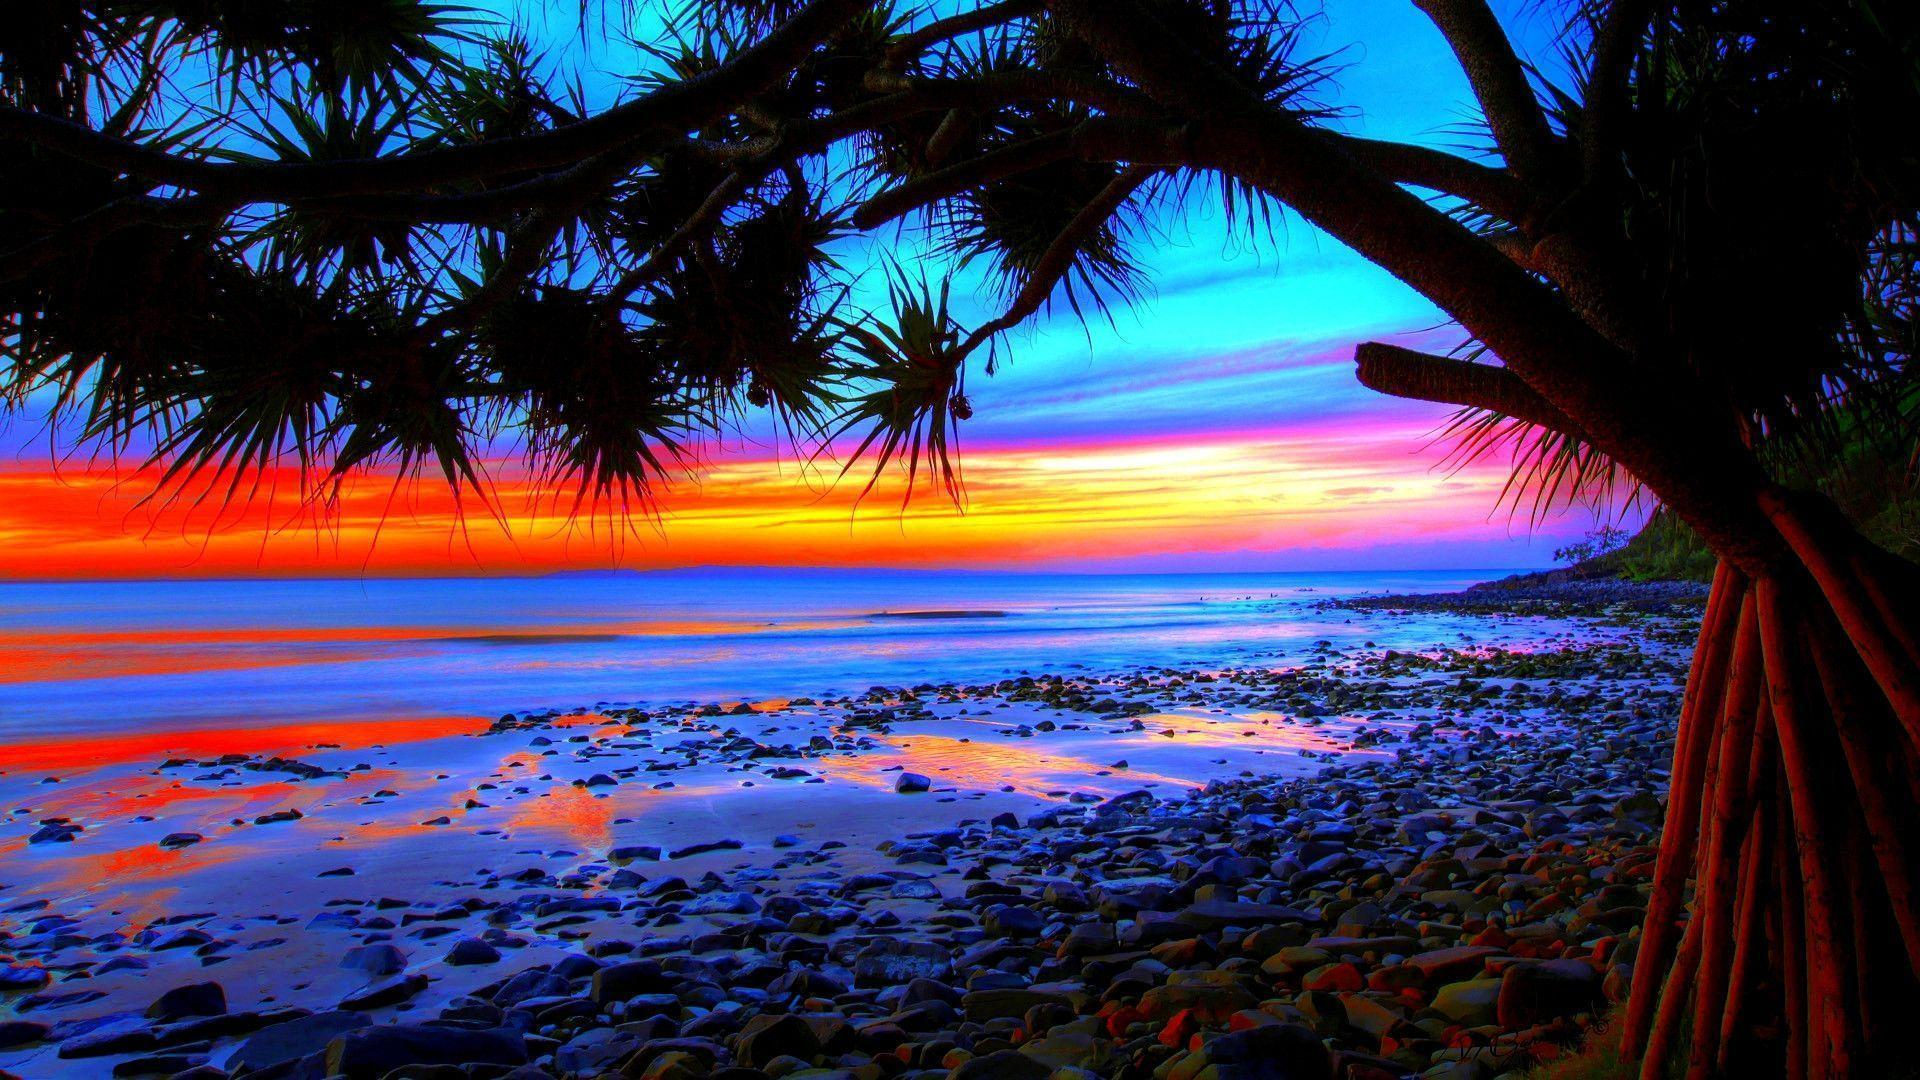 Blue Beach Sunset Wallpaper Hd Pictures 4 HD Wallpapers